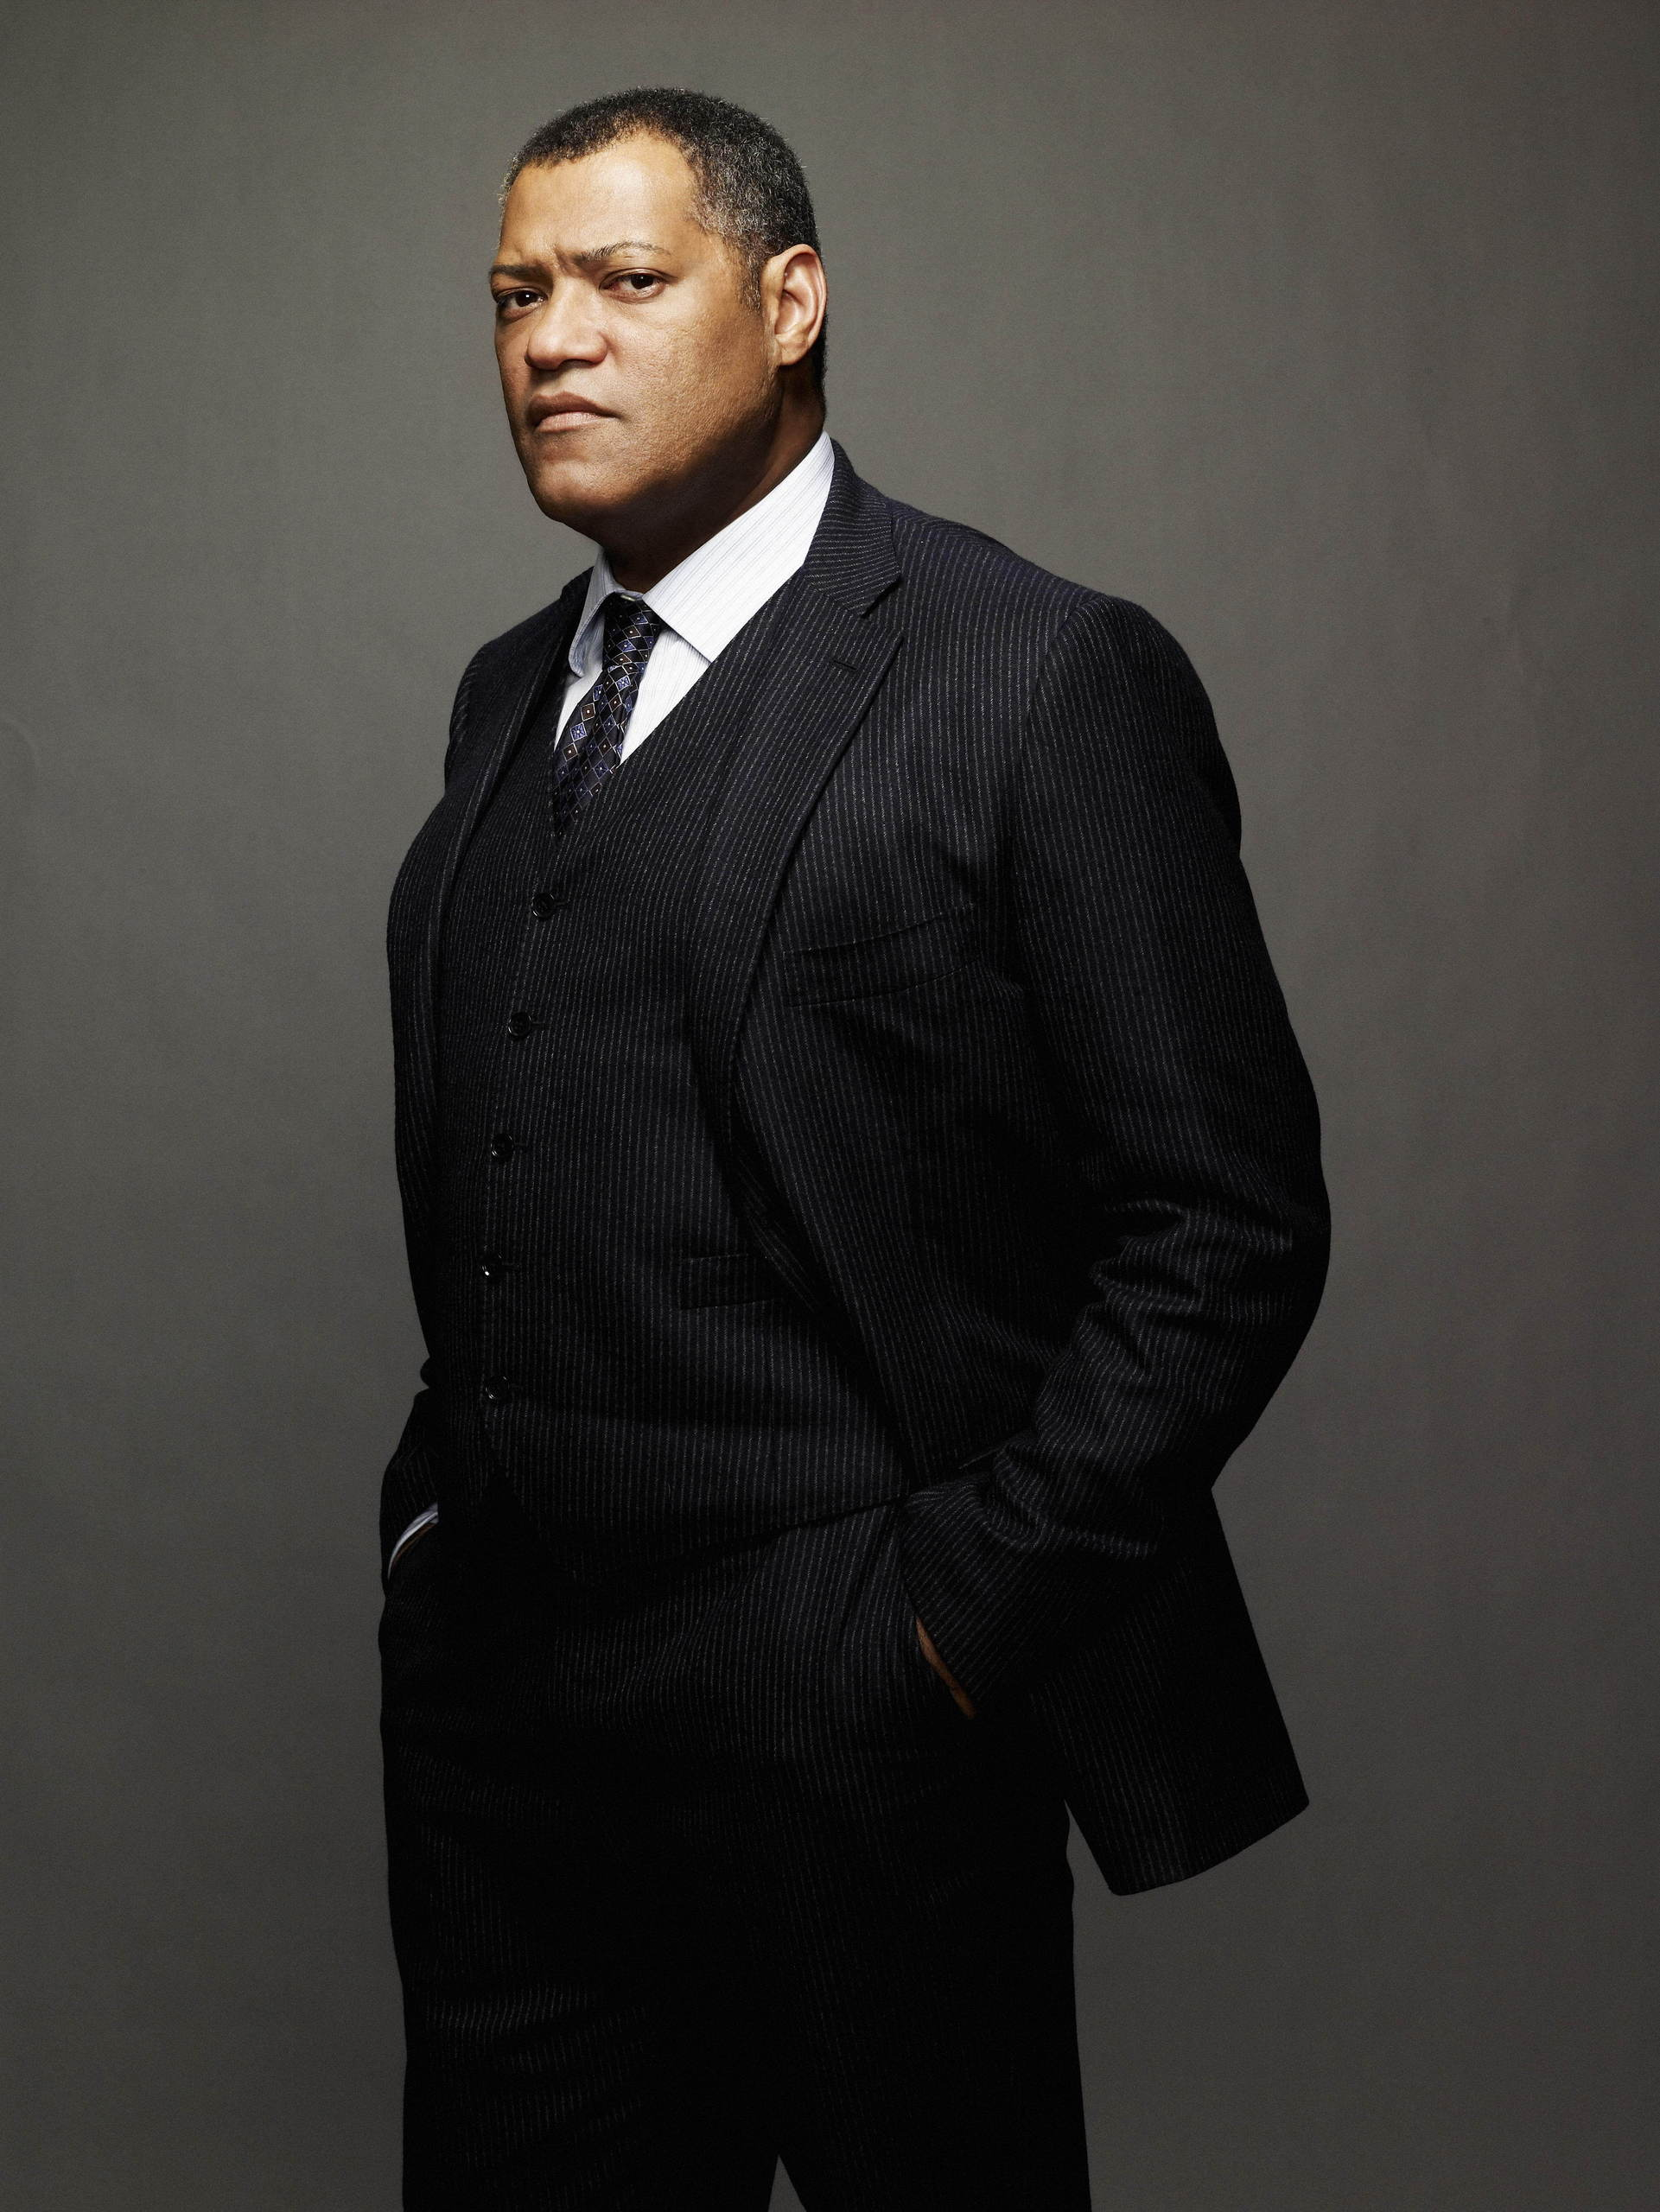 Laurence Fishburne Wallpapers